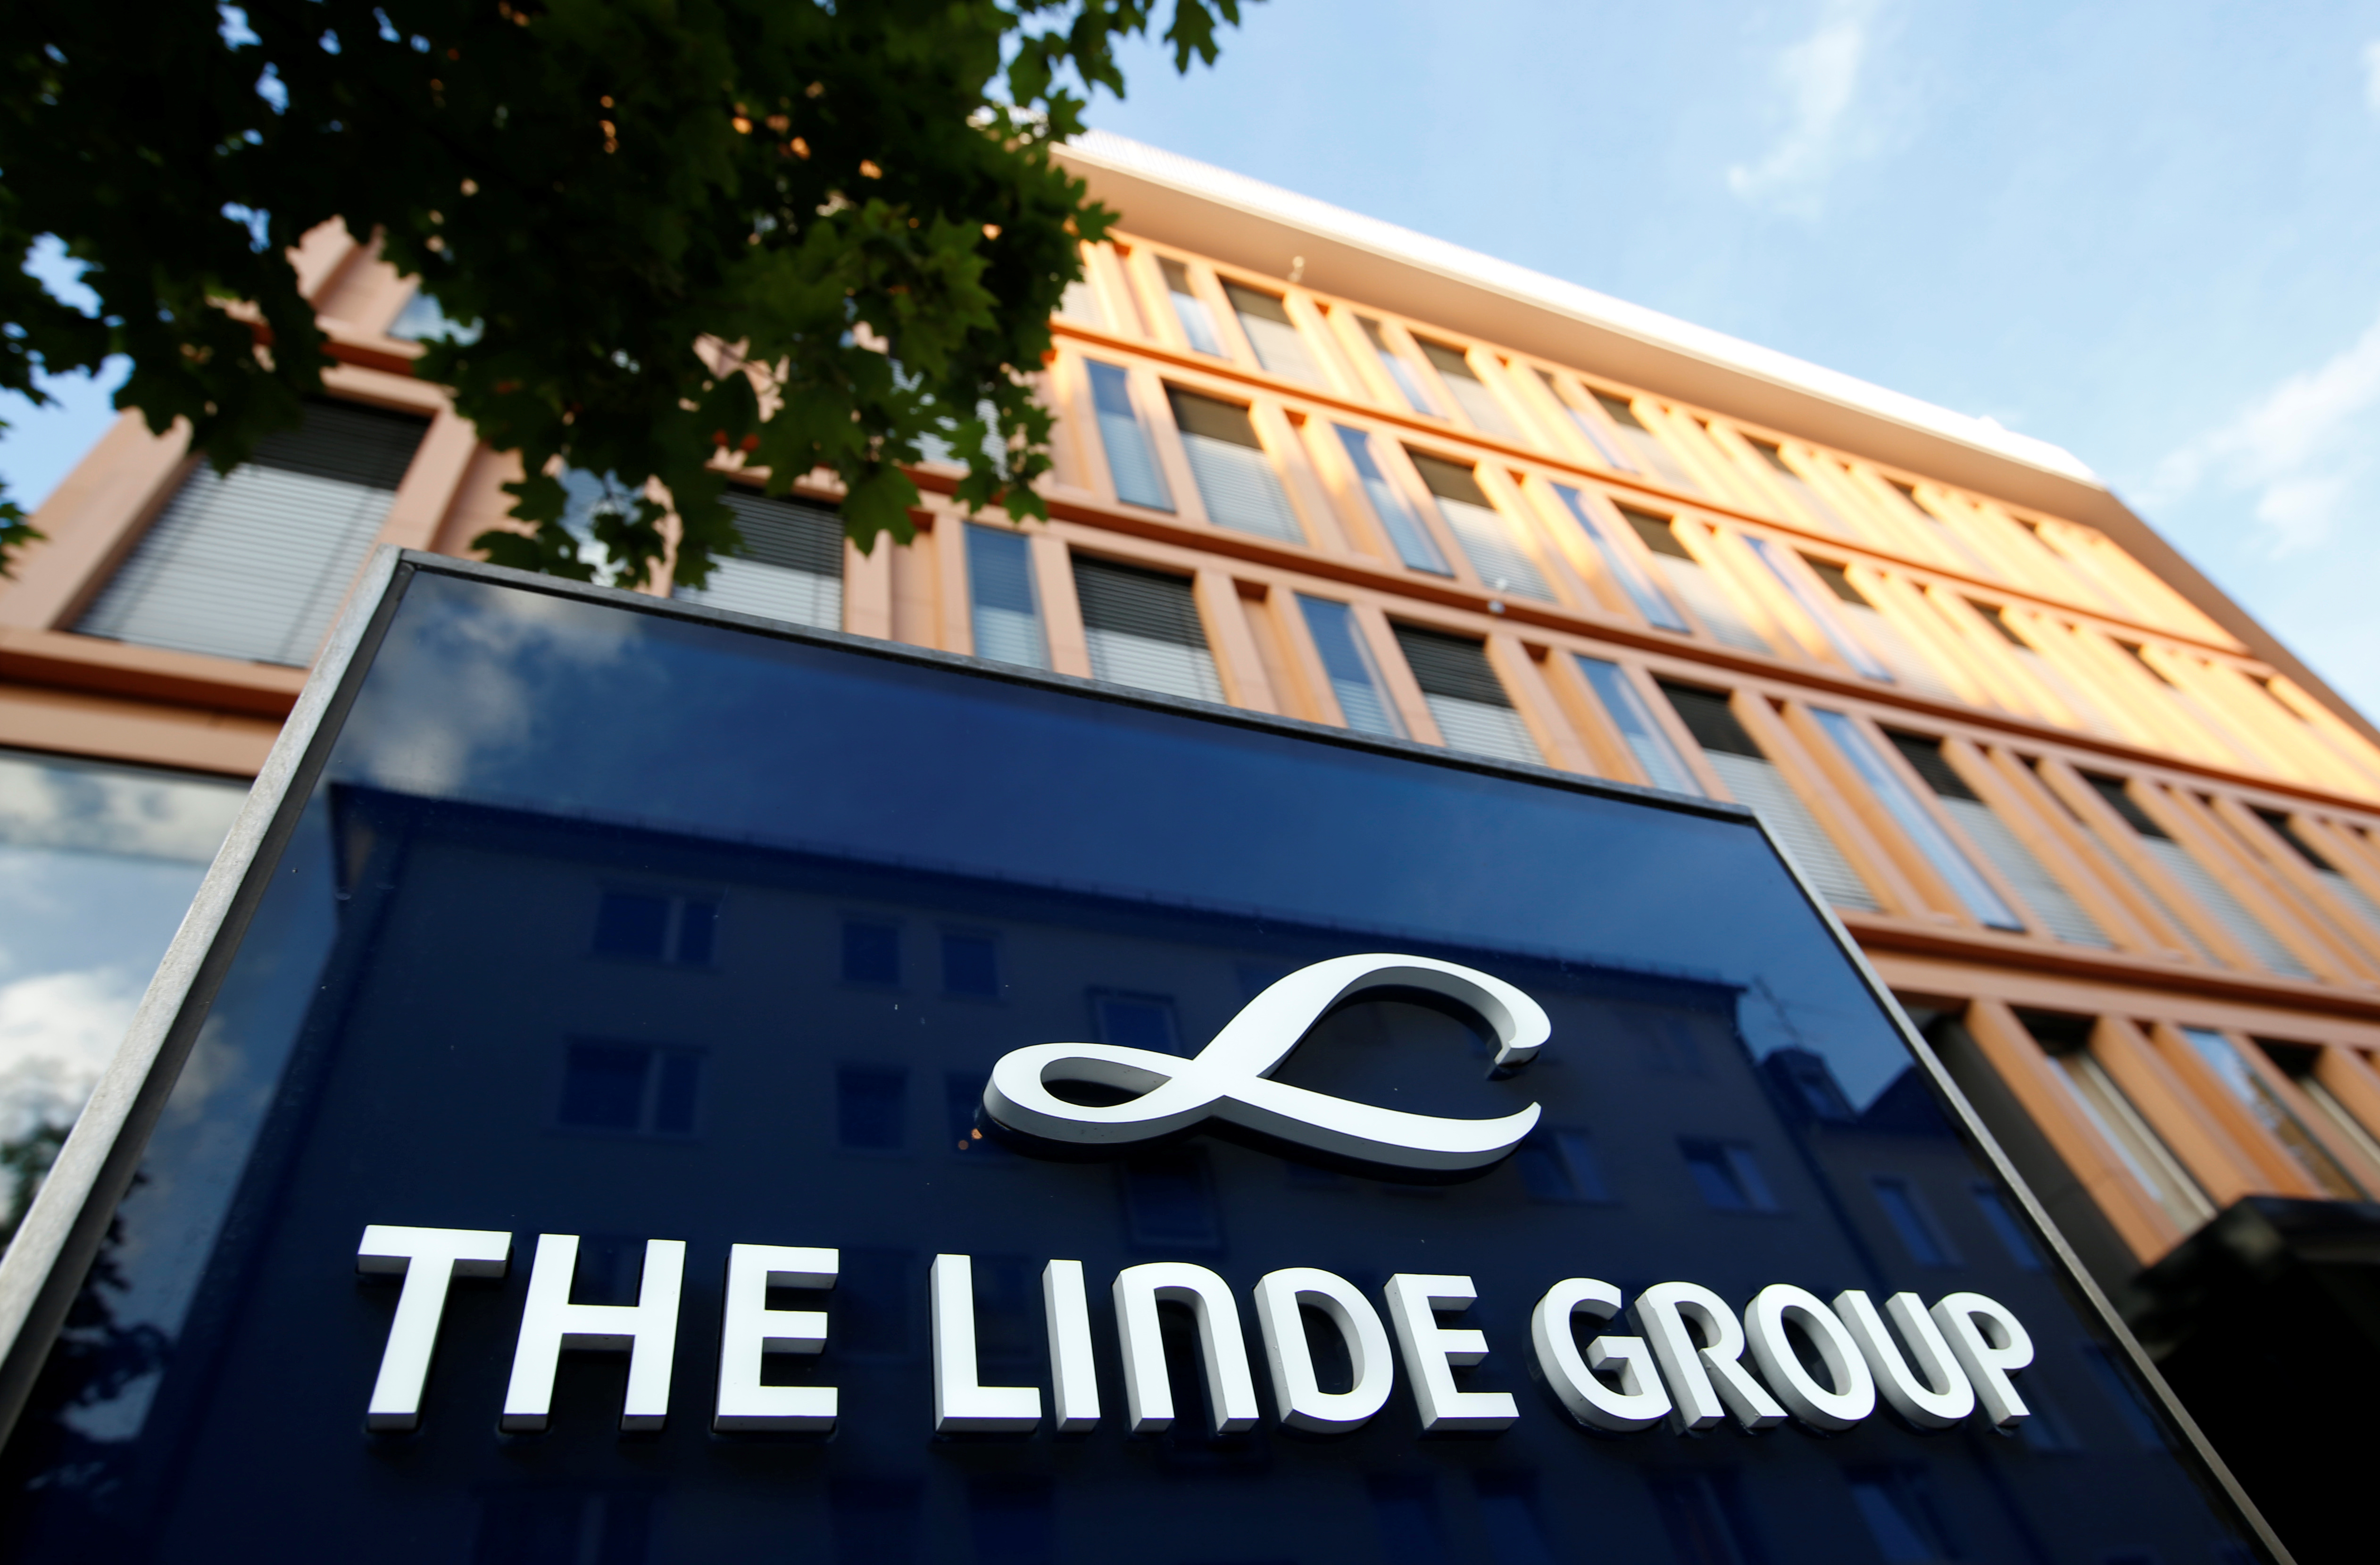 Linde shares seen up after boards agree Praxair merger